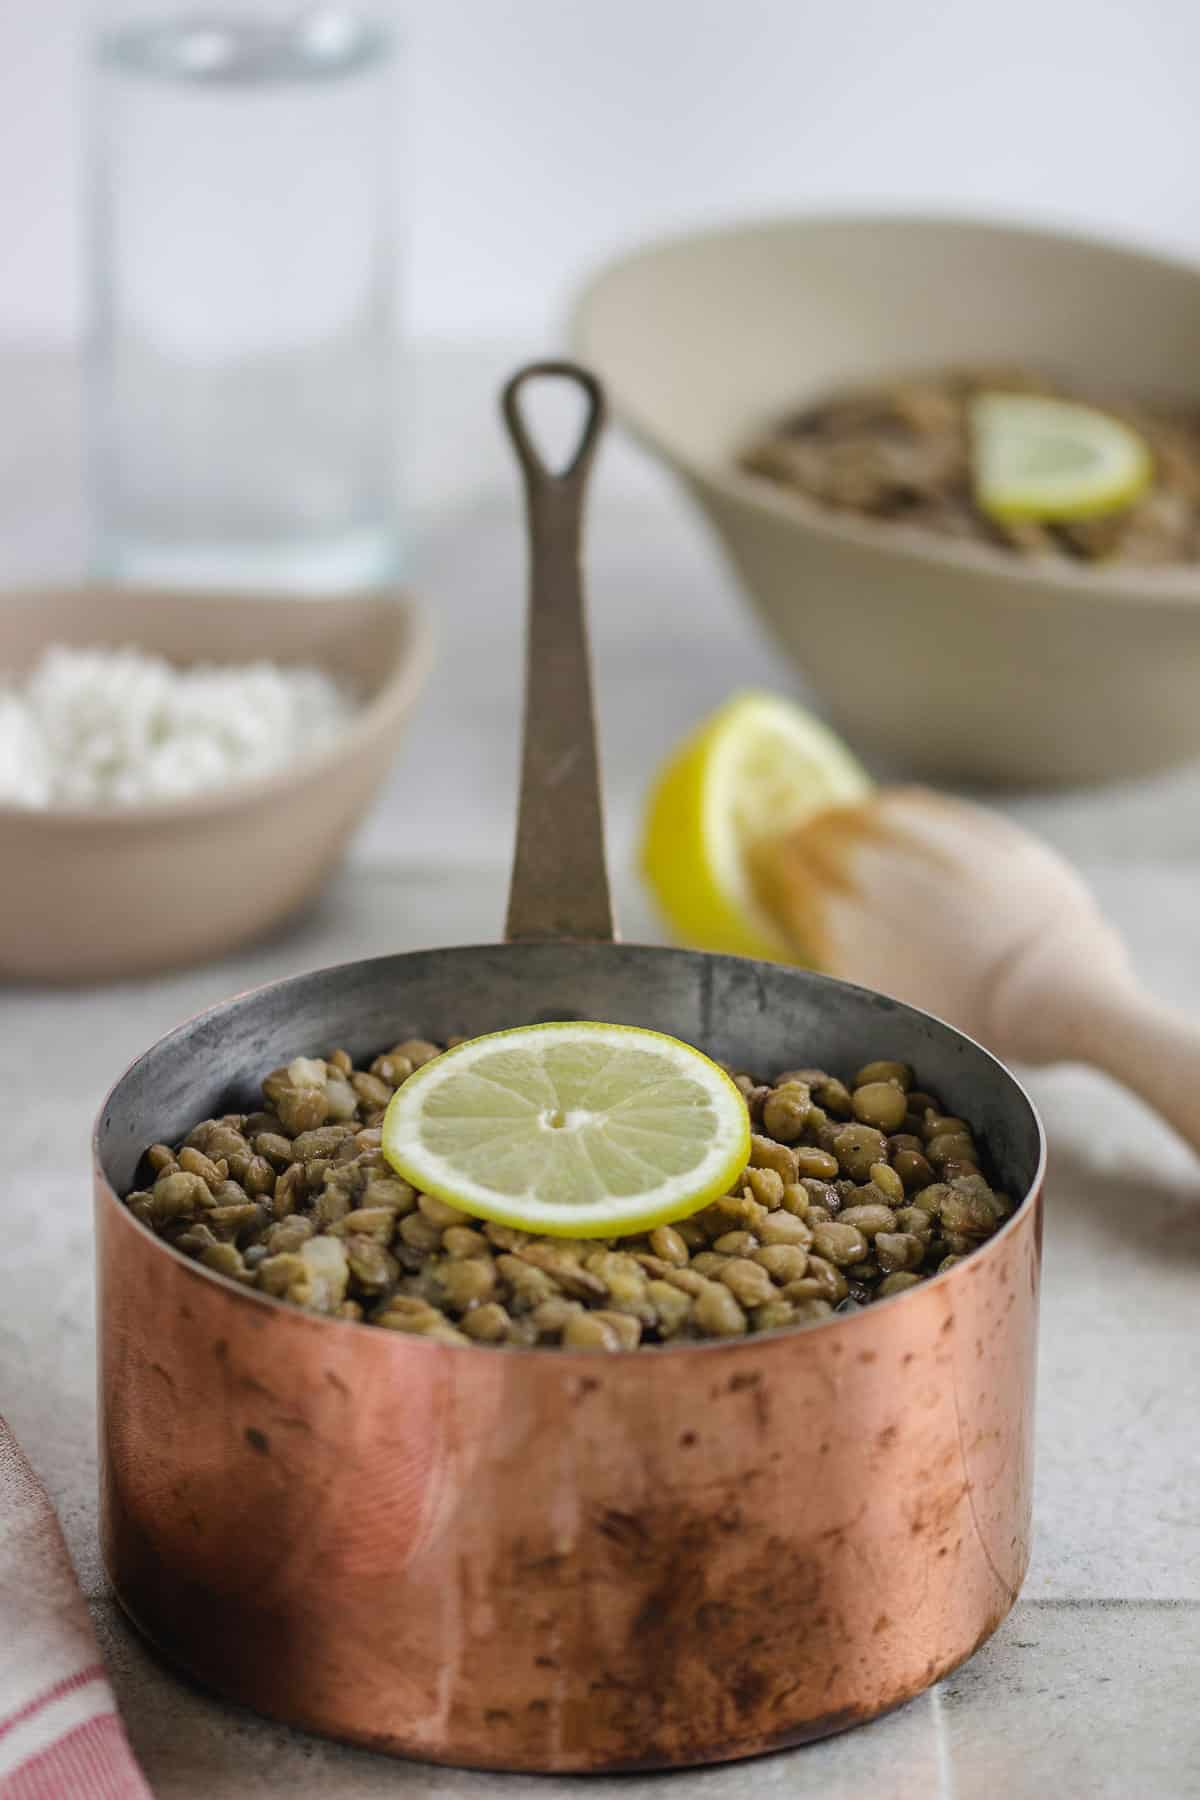 Brown lentils cooking in a copper pot with a lemon slice on top.